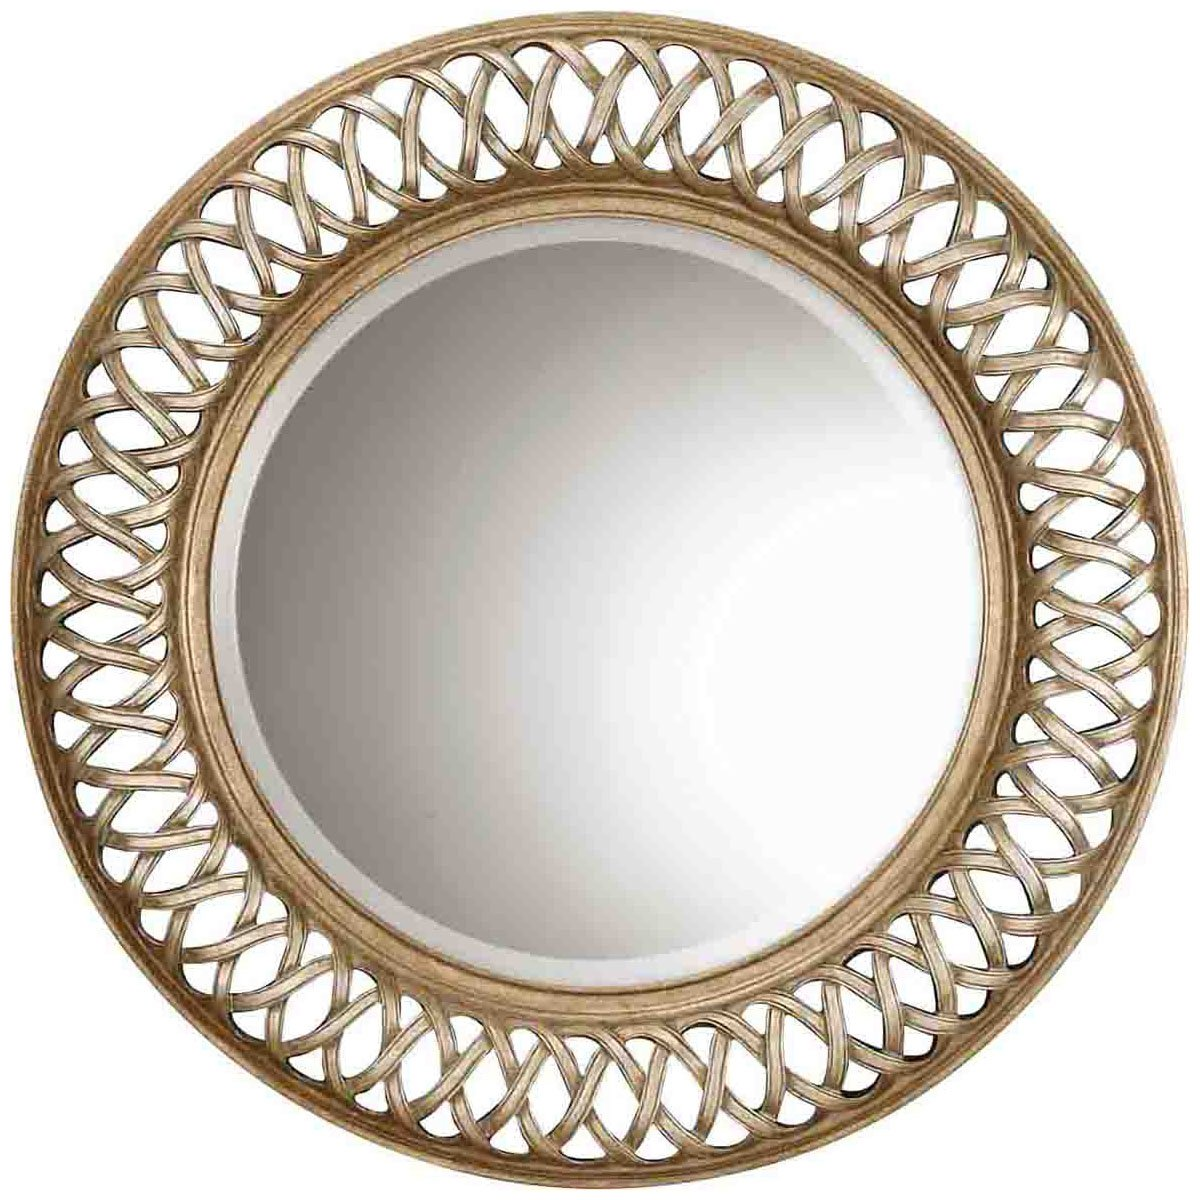 Large Round Silver Mirror Part - 25: Amazon.com: Uttermost 14028 B Entwined Mirror, Antique Gold: Home U0026 Kitchen